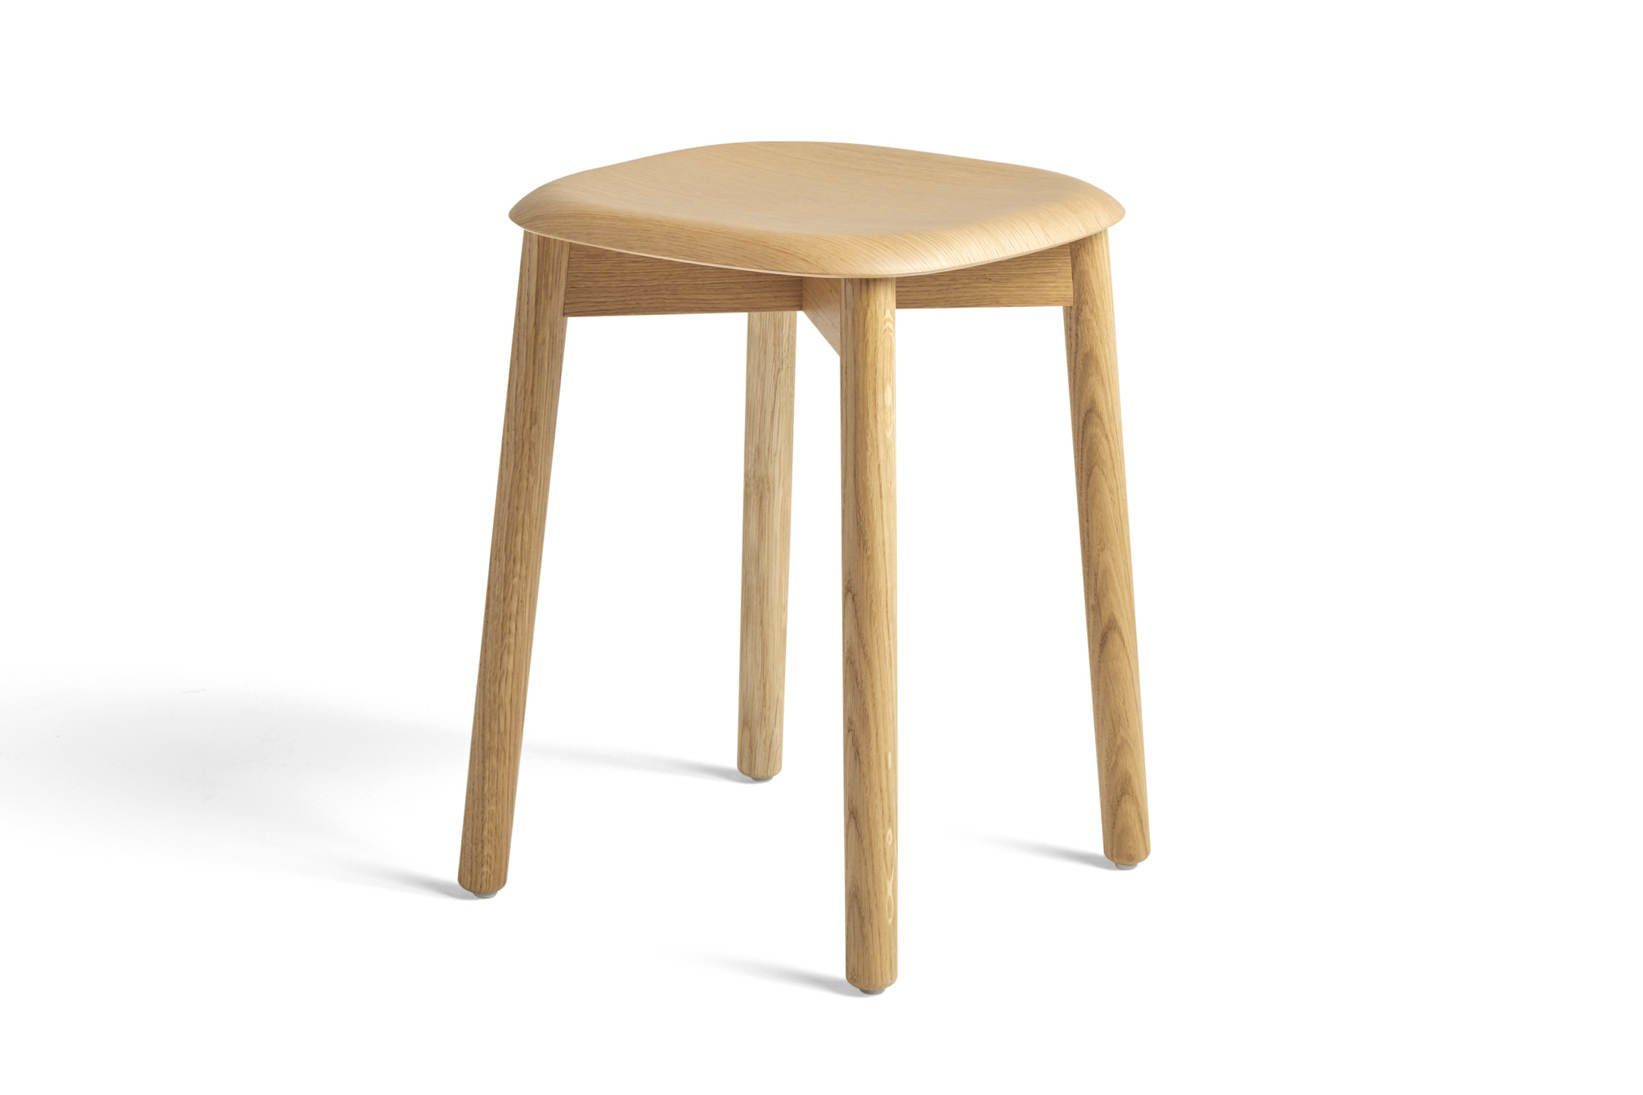 Hay Soft Edge Stool Barkrukken De Projectinrichter